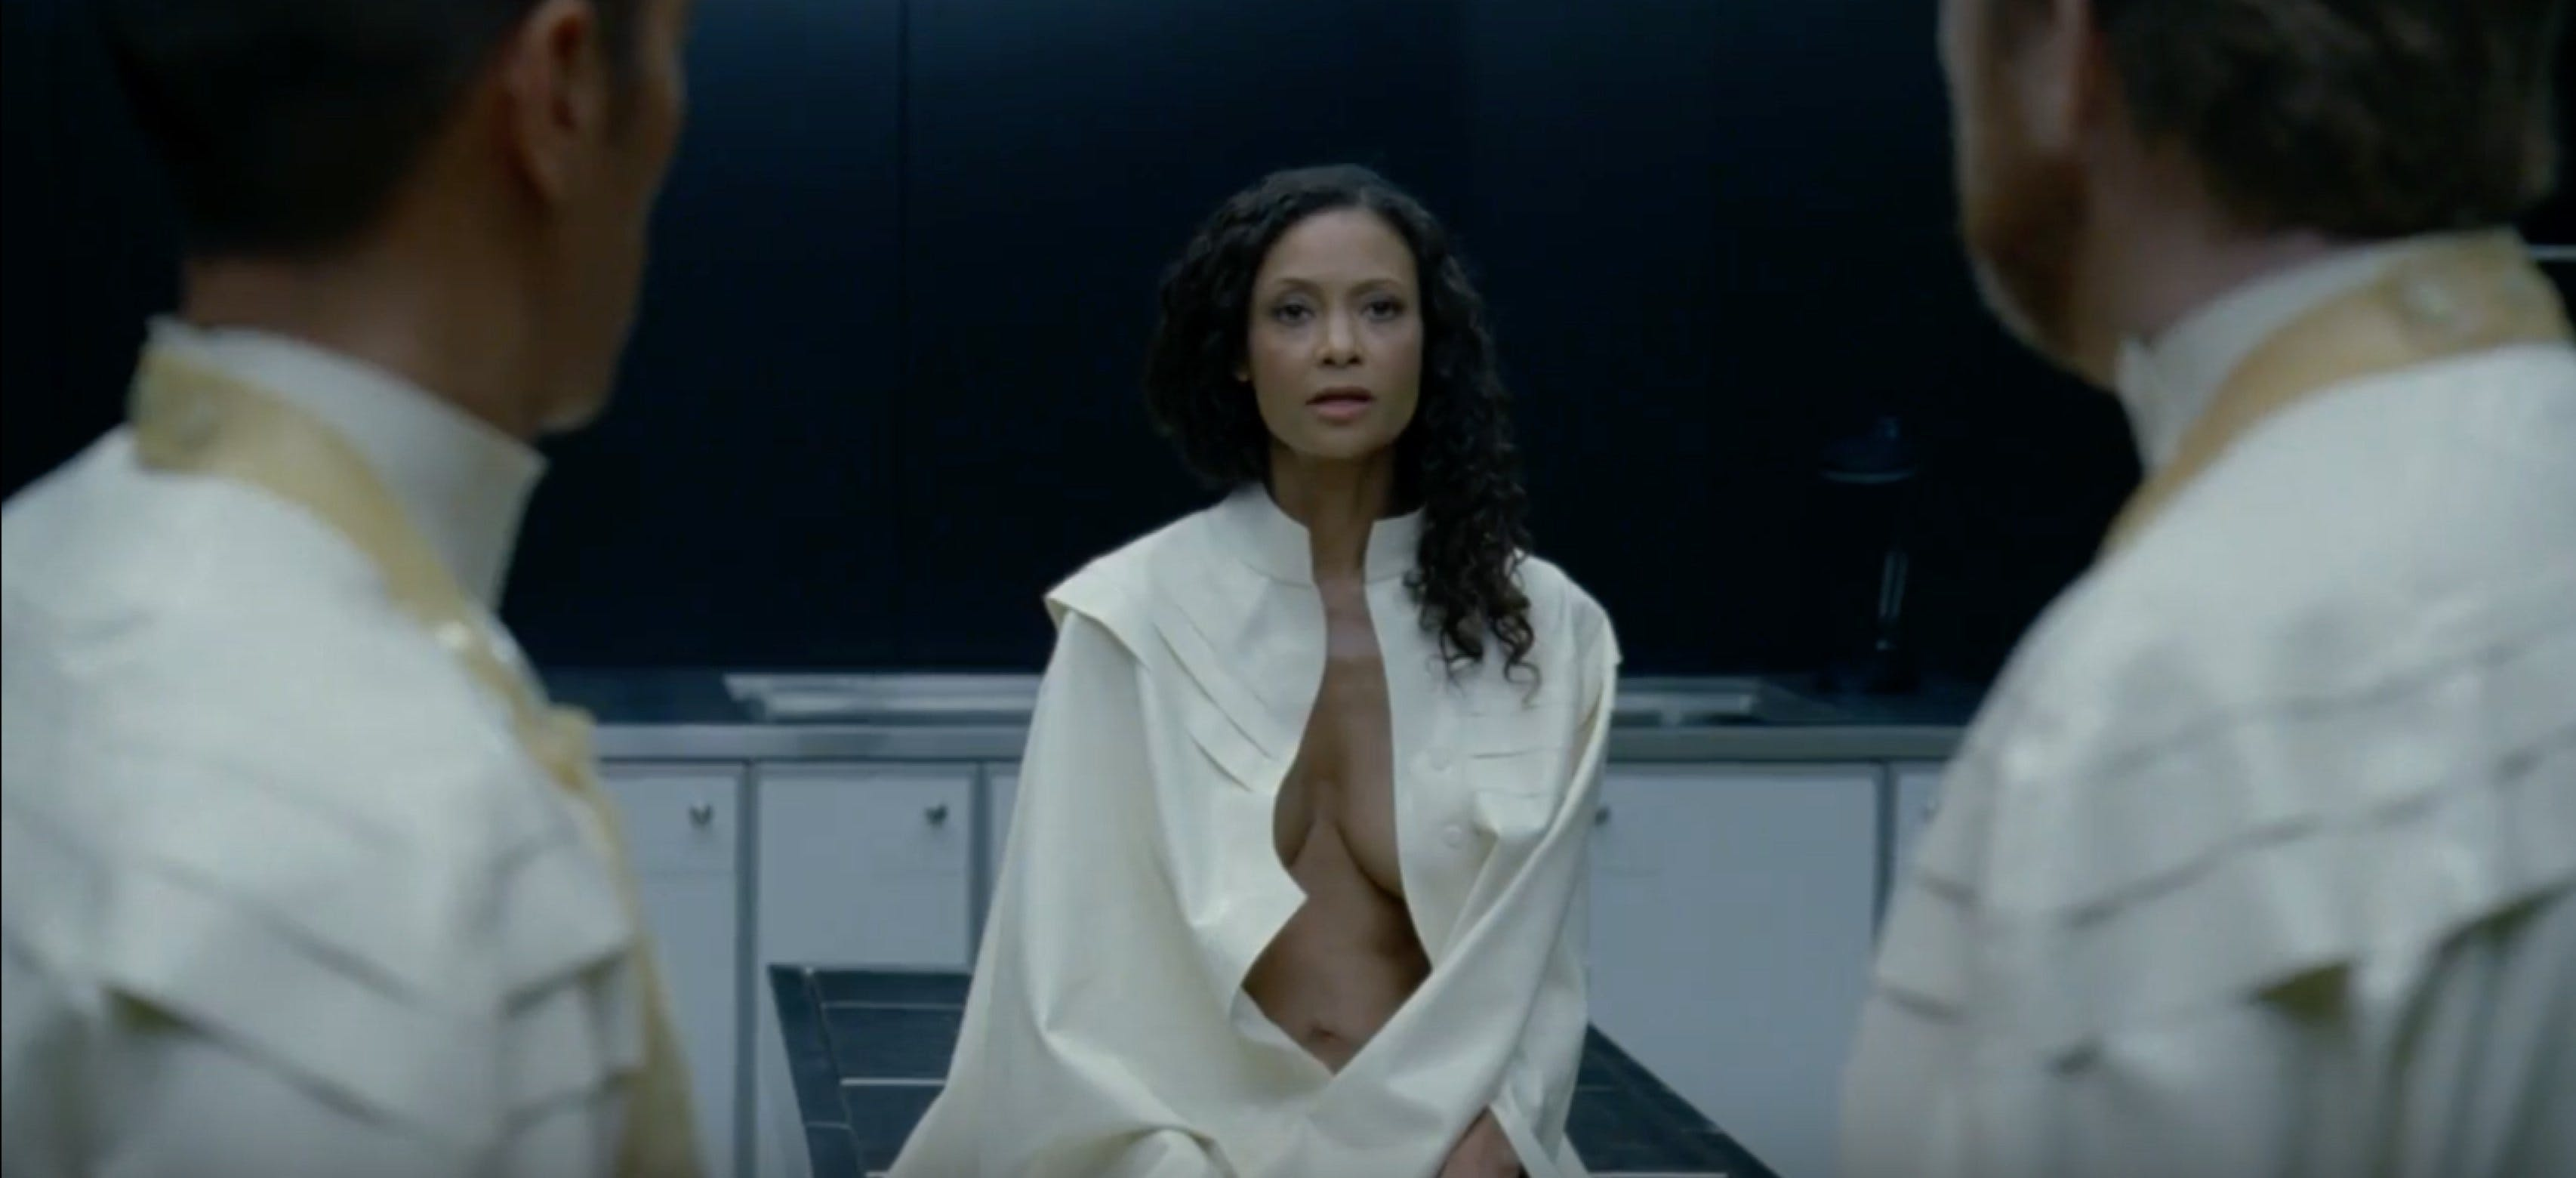 Westworld season 2 cast: Thandie Newton is expected to return as Maeve Millay